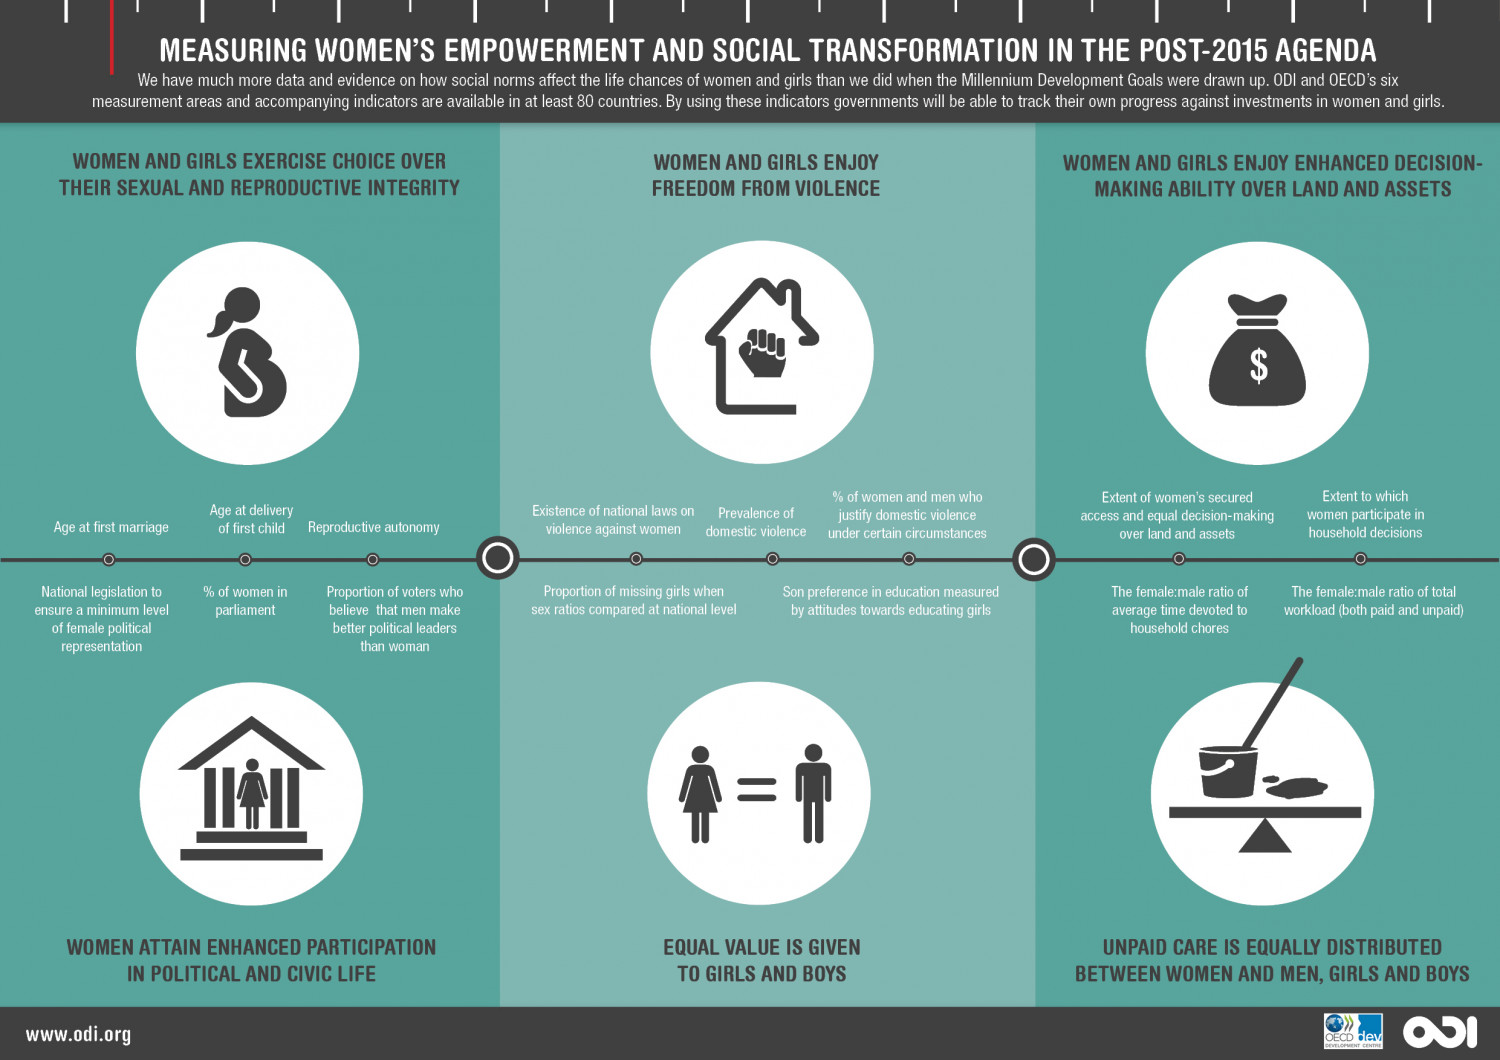 Measuring Women's Empowerment And Social Transformation In The Post-2015 Agenda Infographic